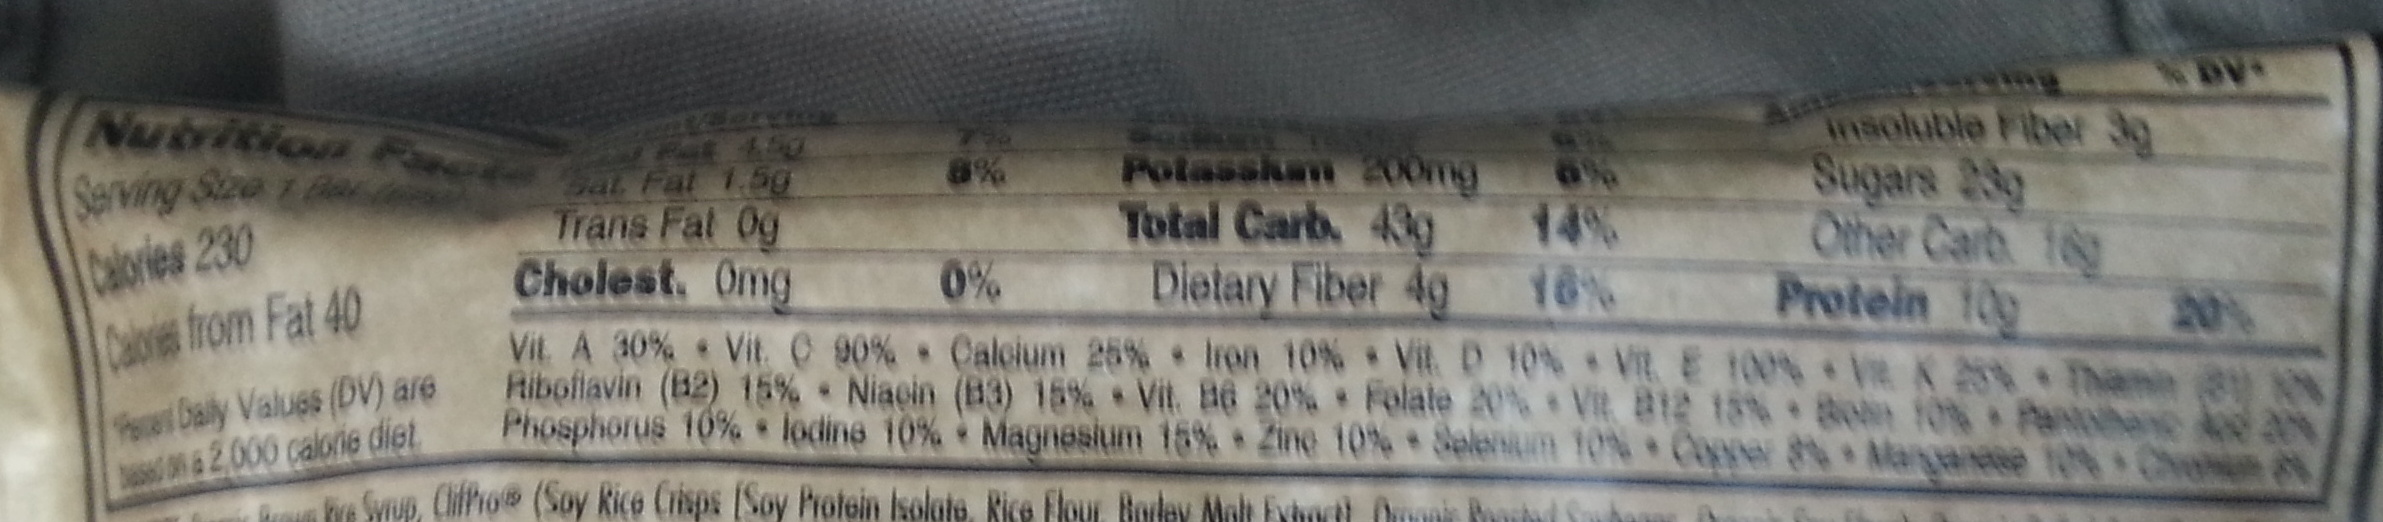 Chocolate chip energy bar - Nutrition facts